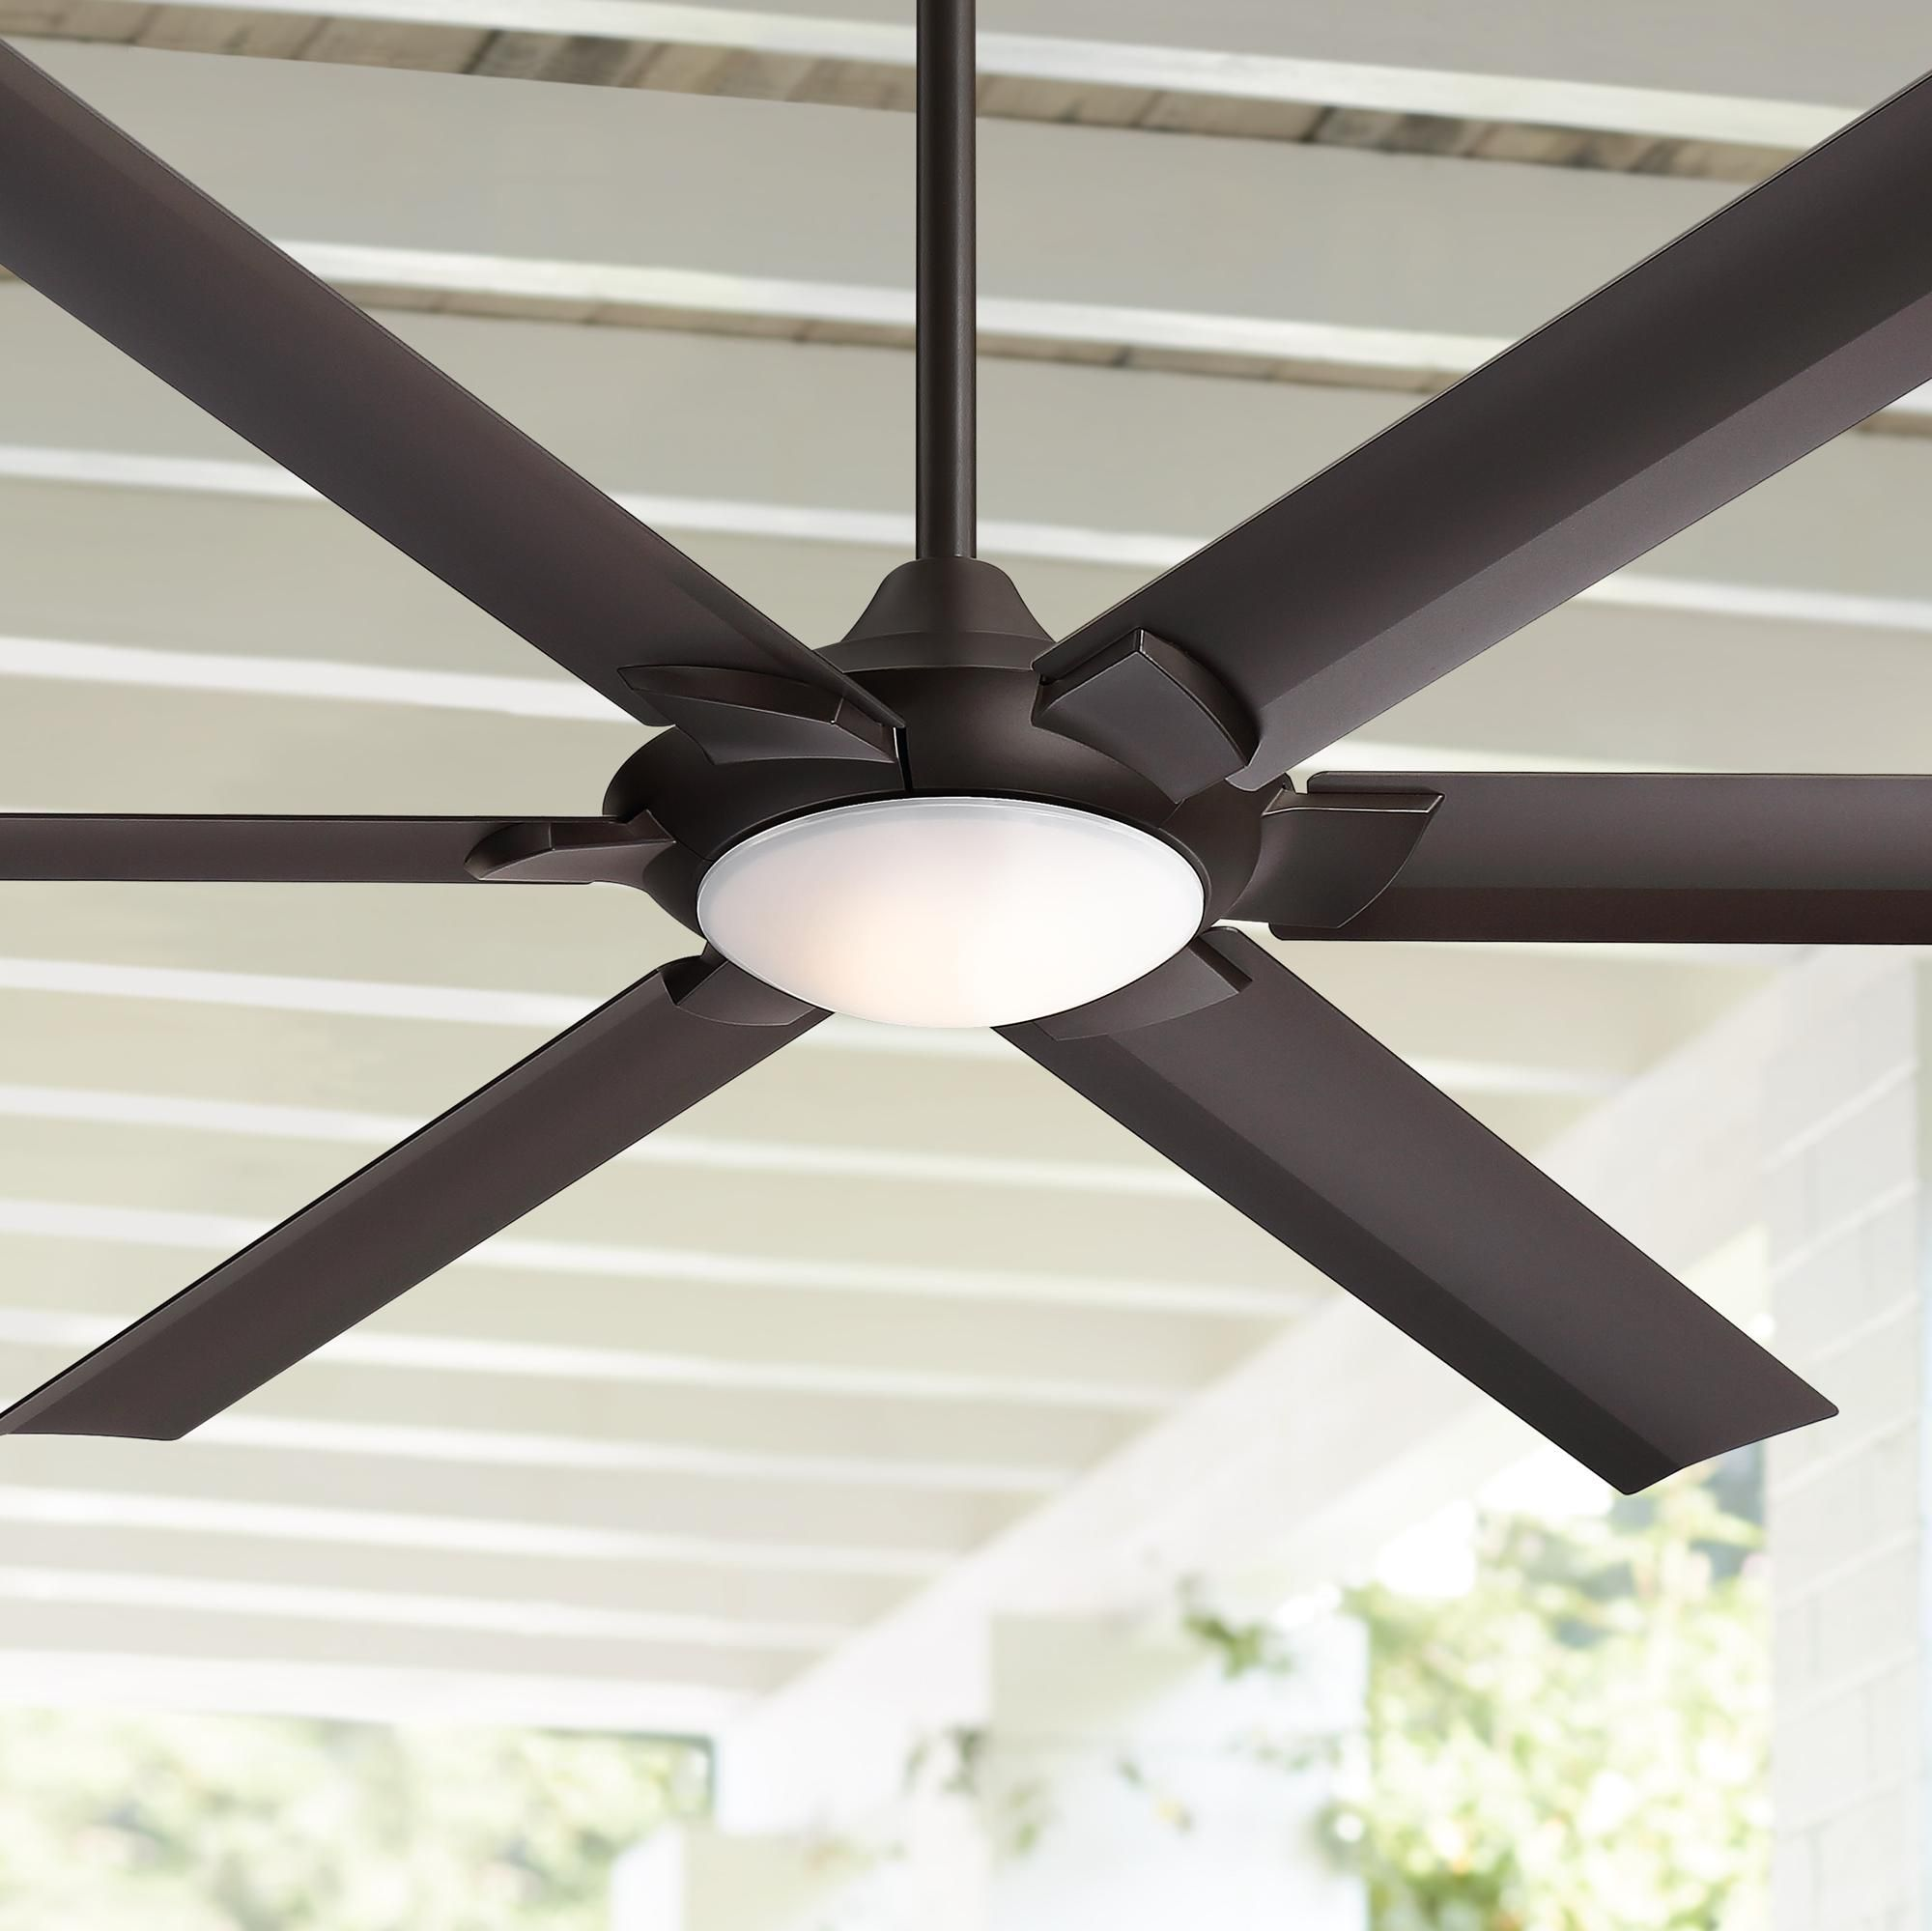 70 Inch Patriarch Oil Rubbed Bronze Damp Led Ceiling Fan Led Ceiling Fan Ceiling Fan Outdoor Ceiling Fans